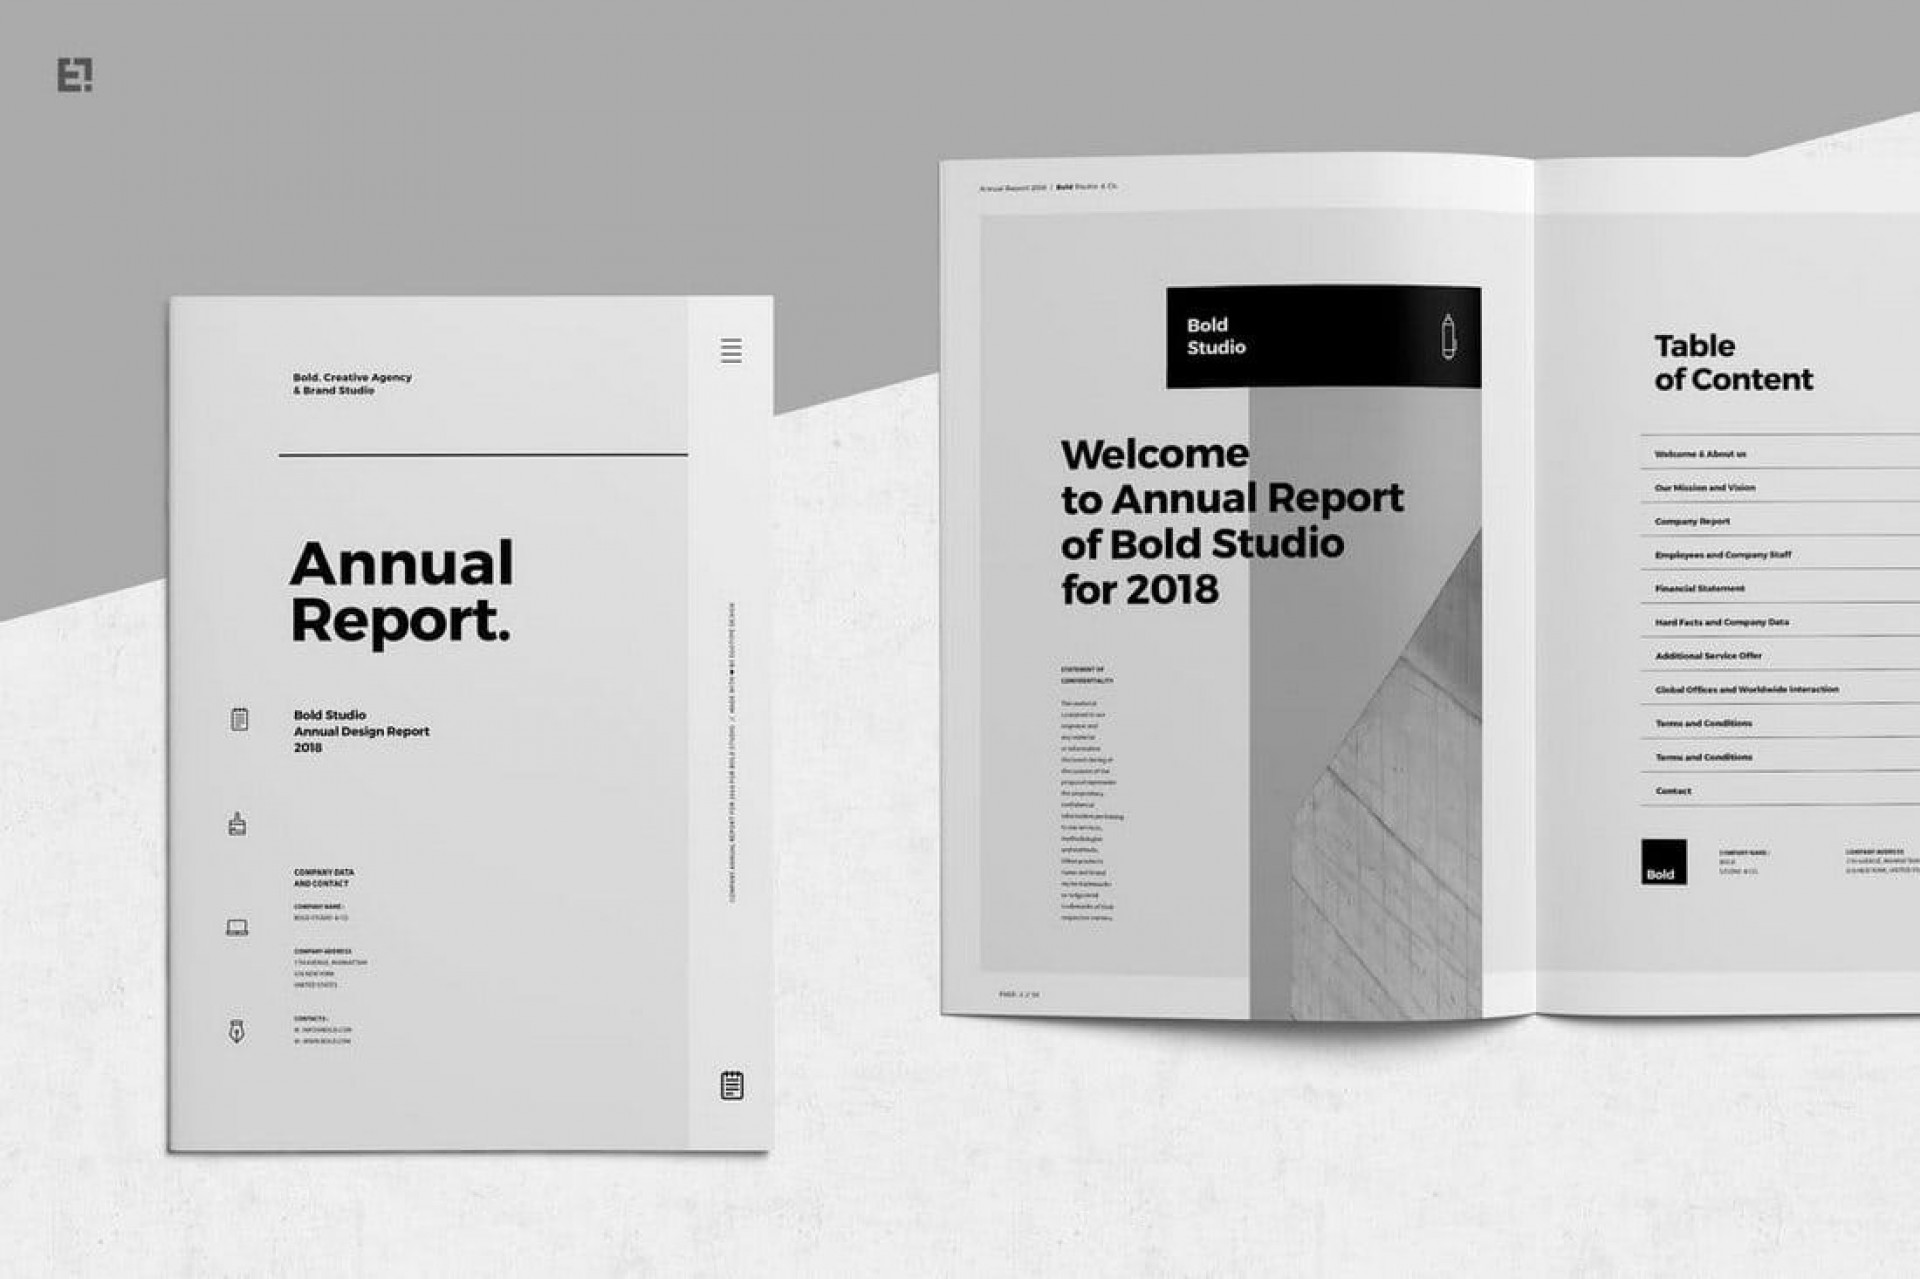 006 Awesome Free Indesign Annual Report Template Download Photo 1920